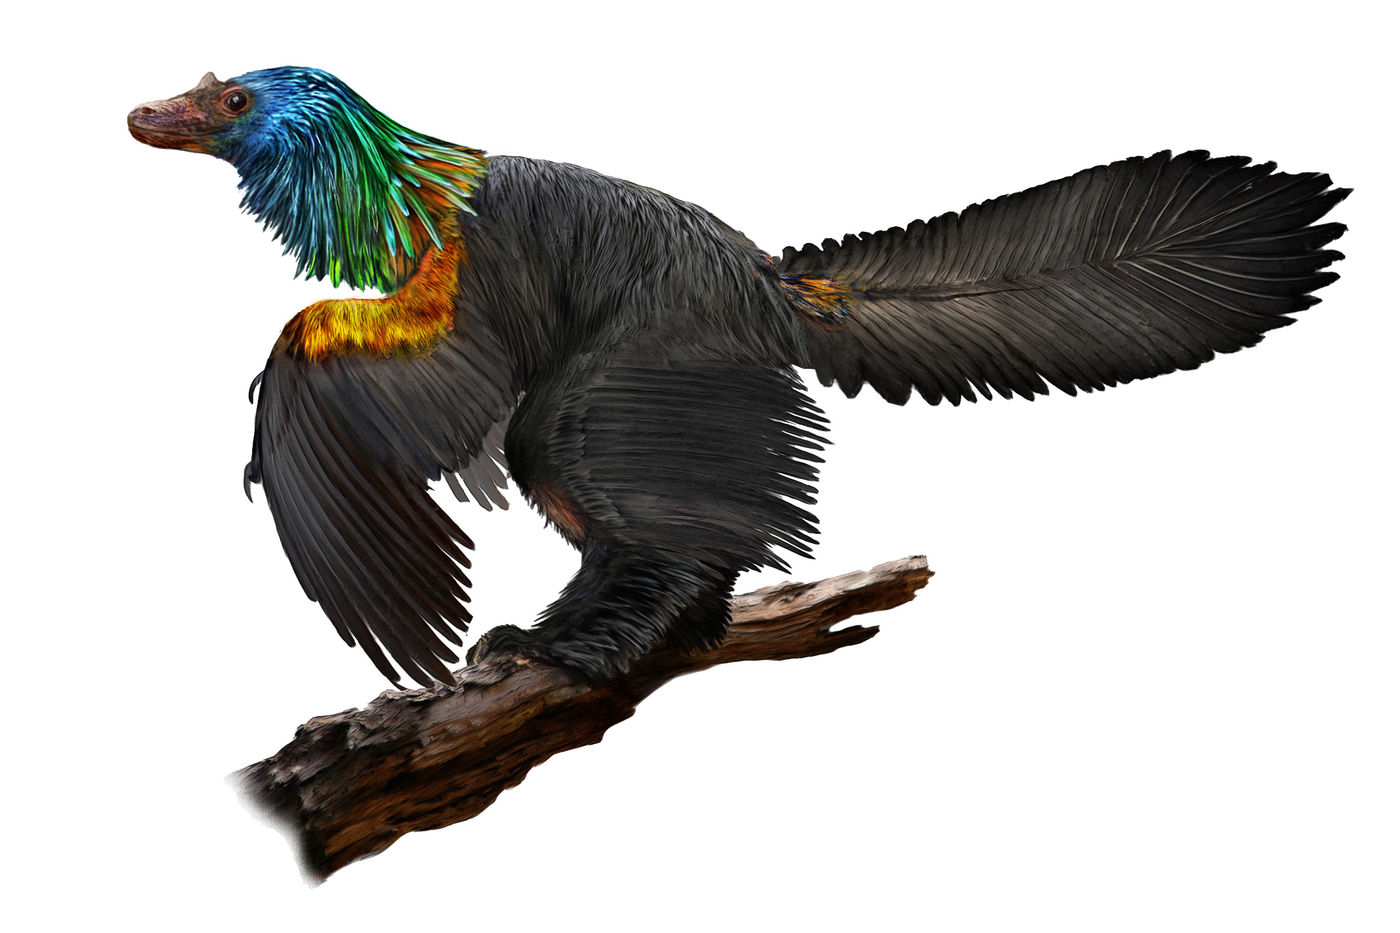 Illustration of a bird-like dinosaur perched on a branch. Its body is covered in feathers, mostly black, with bright orange and yellow feathers on the top of the wing, green on the neck, and blue on the head. Its long, feathered tail is raised.